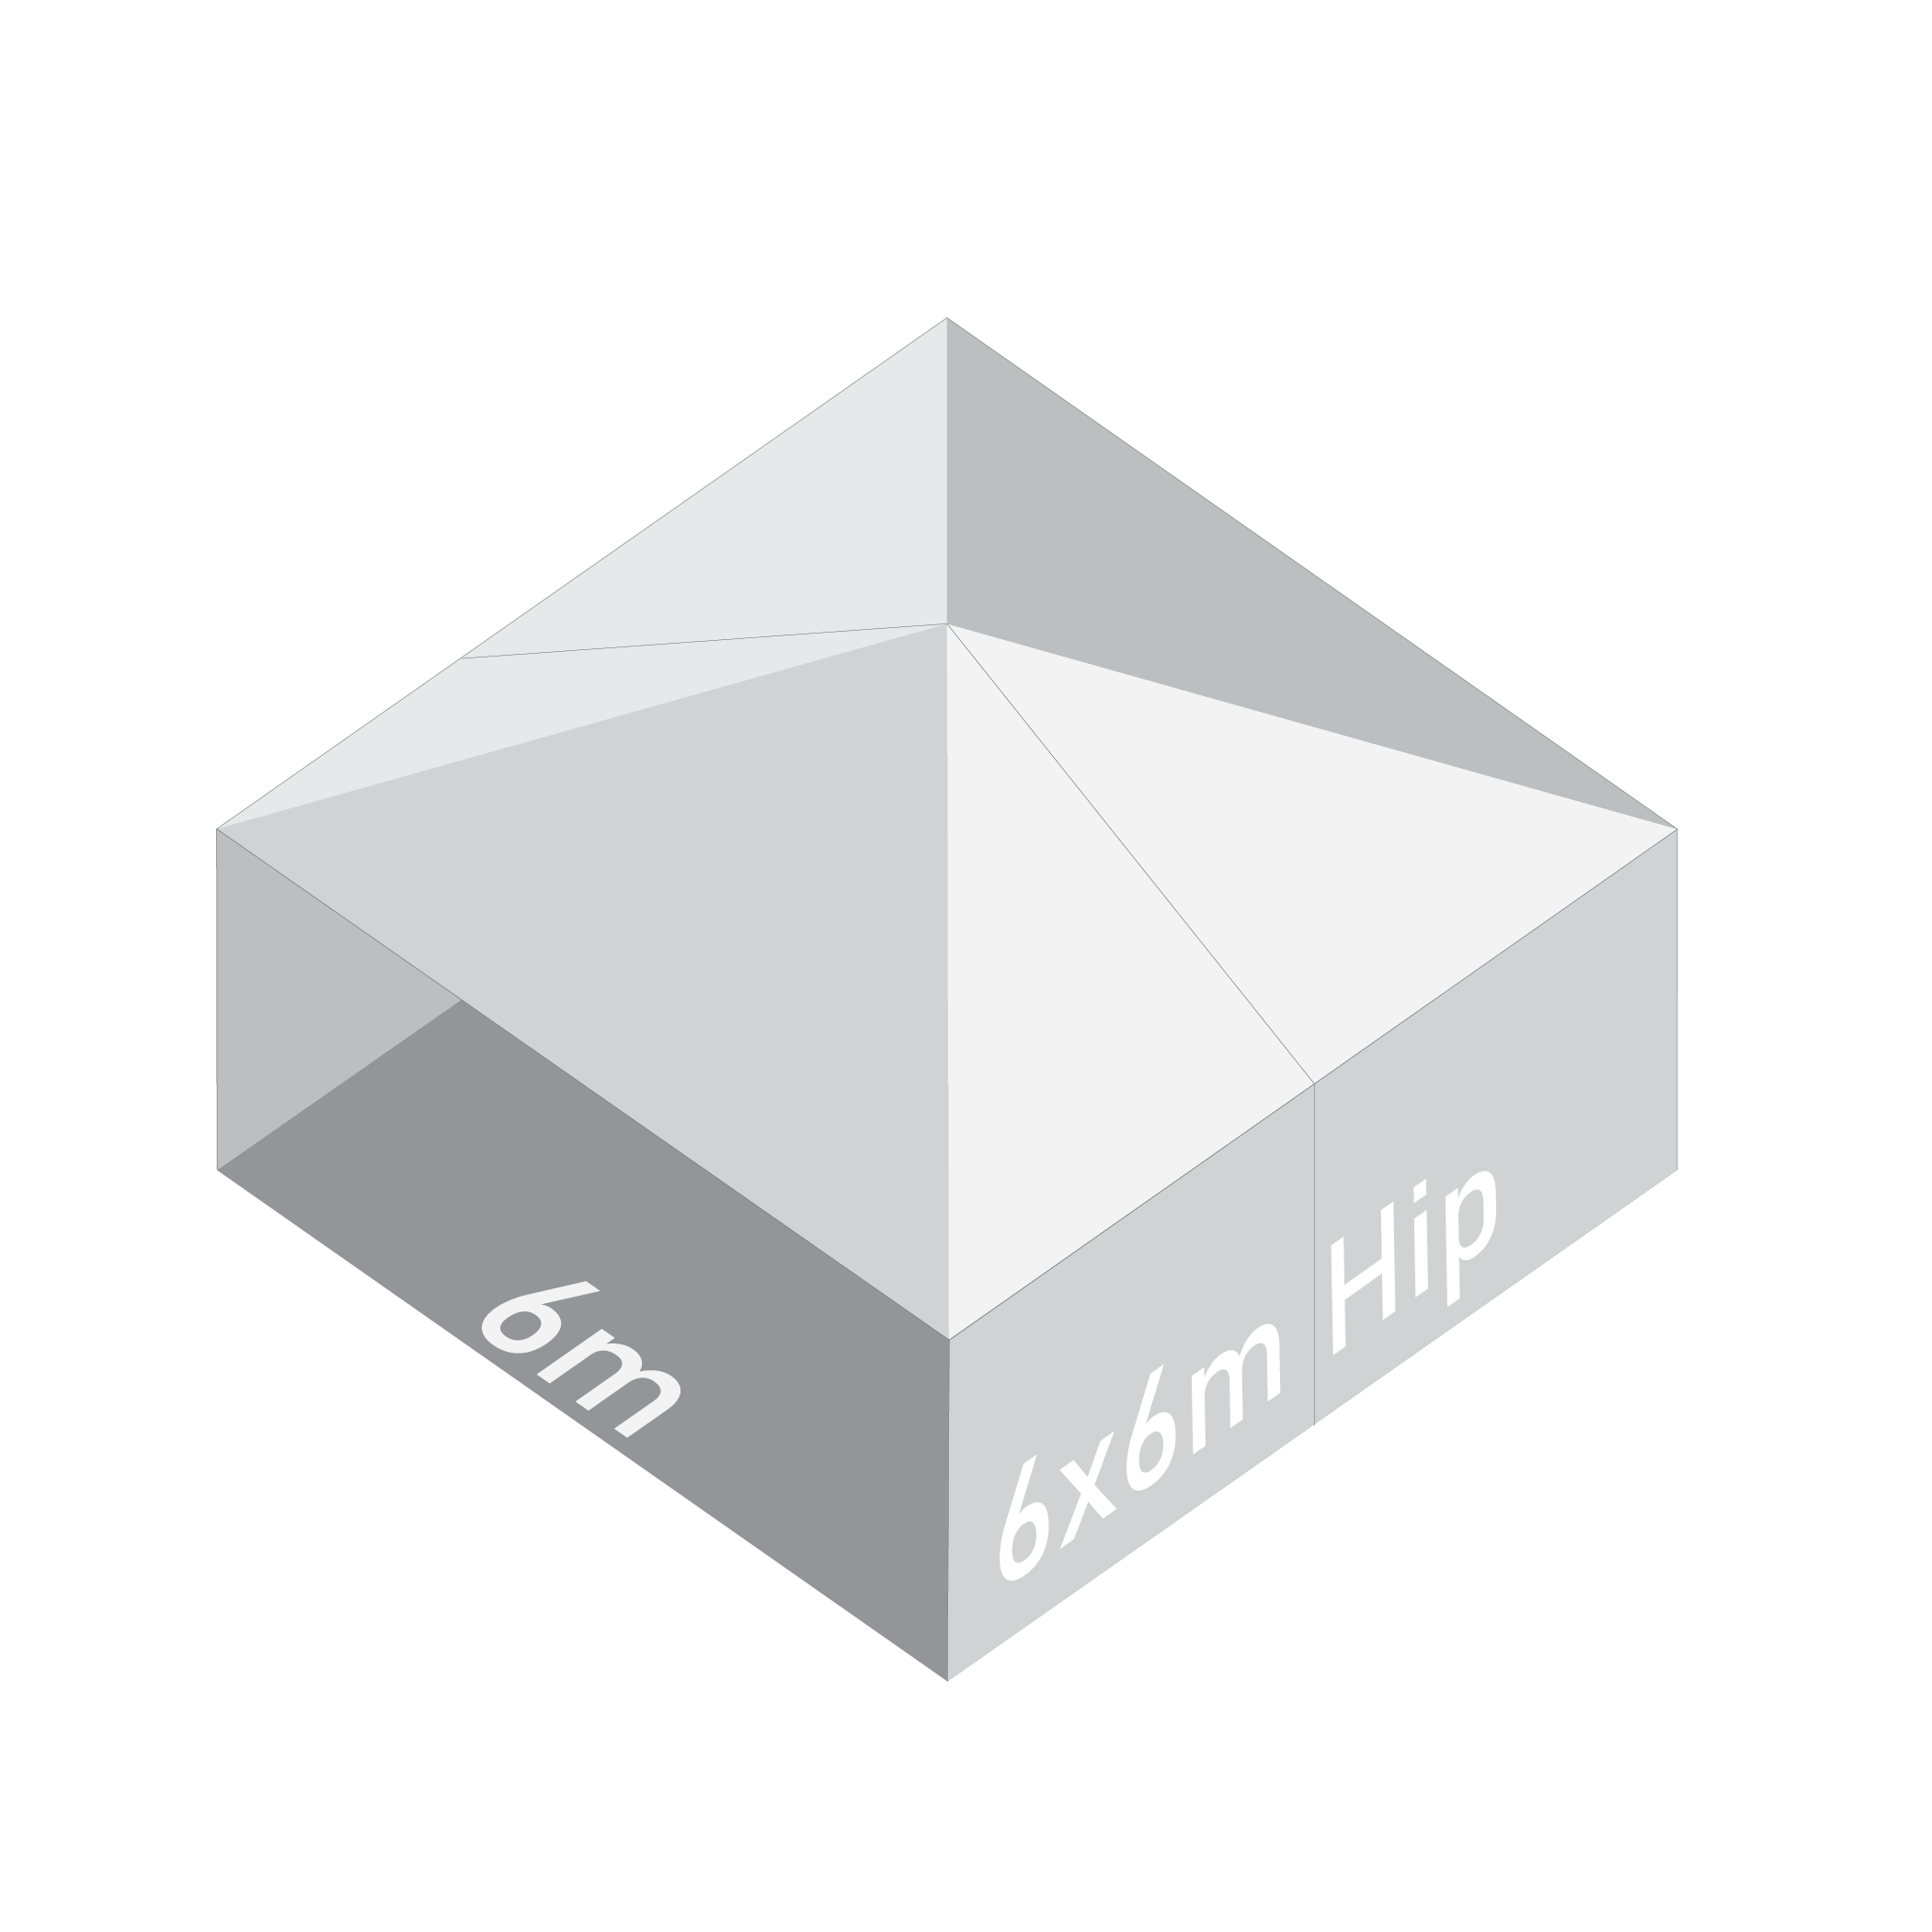 icon 6x6 hip.png